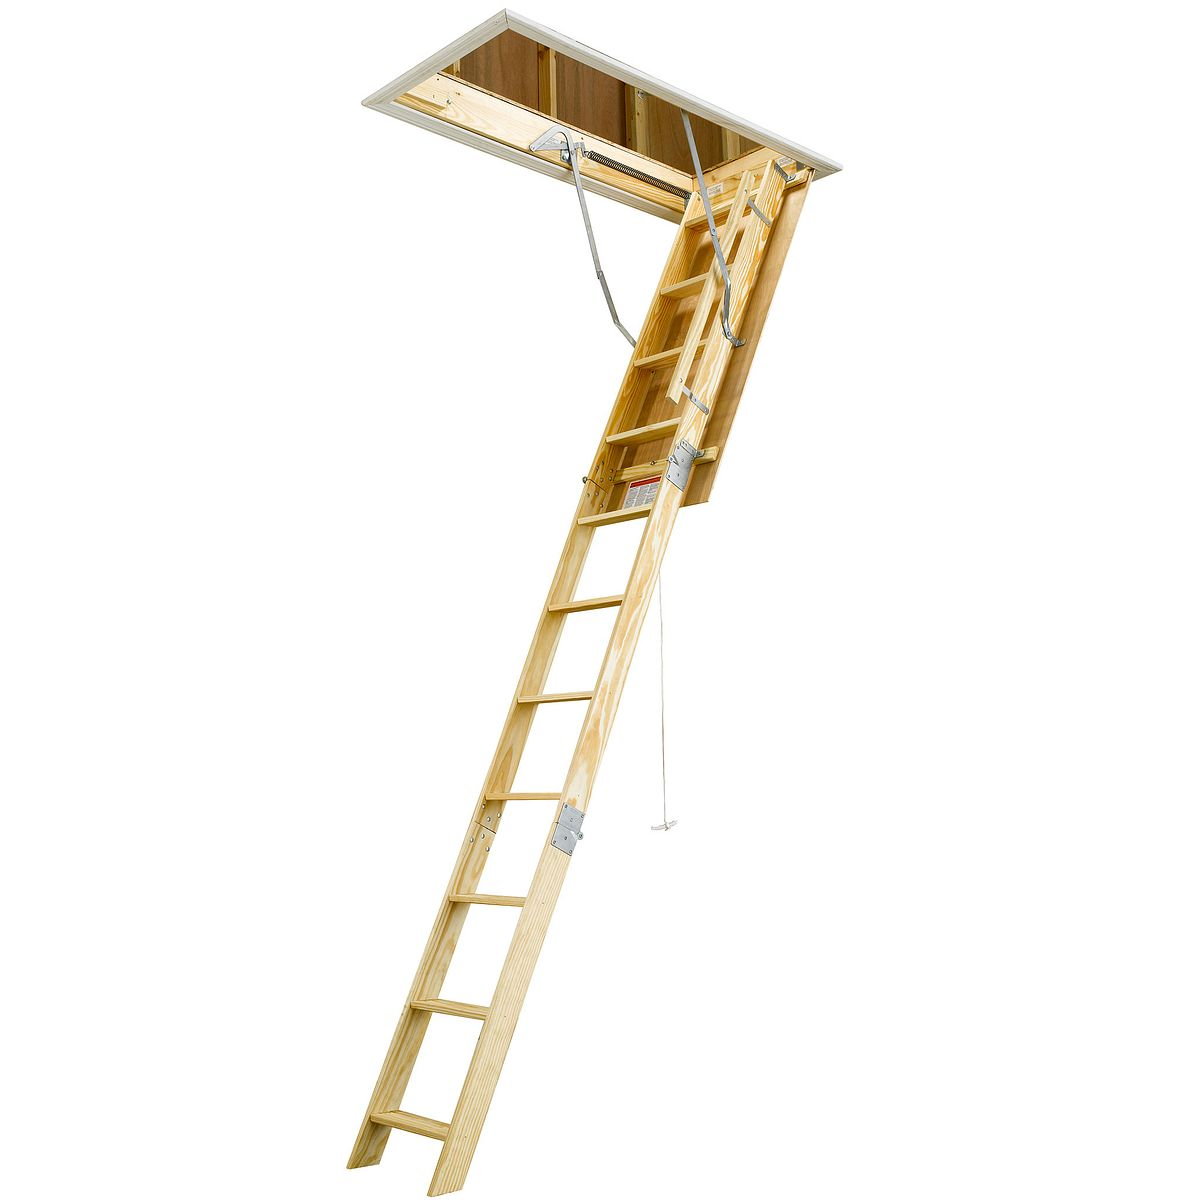 W2510 Attic Ladders Werner Us